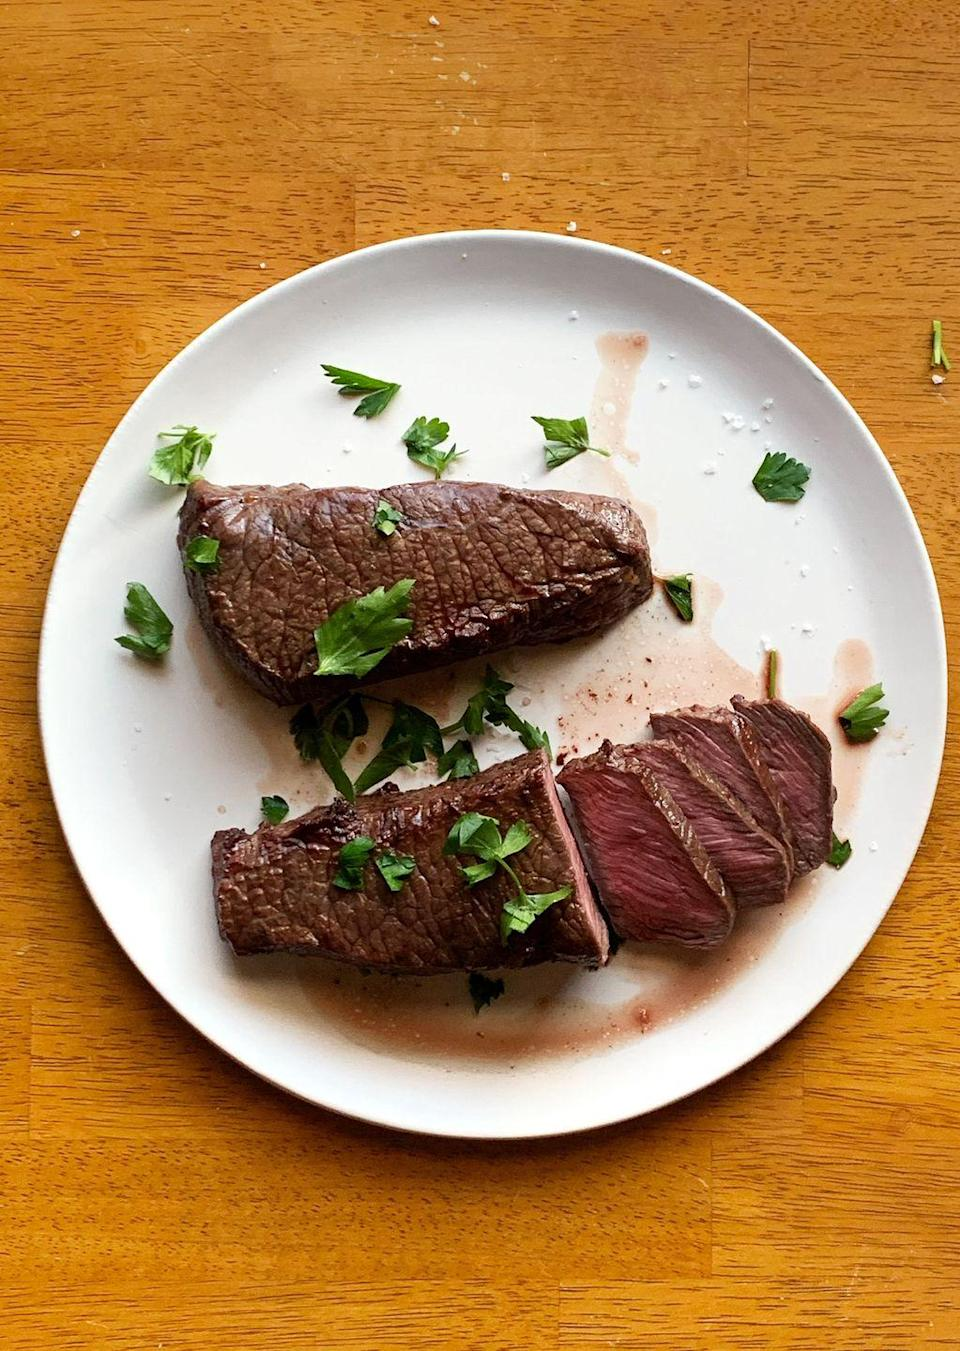 """<p>Steak is one of those dinners that manage to be both easy and decadent. And with an air fryer, it's faster than an oven, and far less messy than a frying pan. </p><p><strong><a href=""""https://www.countryliving.com/food-drinks/a35462011/air-fryer-steak/"""" rel=""""nofollow noopener"""" target=""""_blank"""" data-ylk=""""slk:Get the recipe"""" class=""""link rapid-noclick-resp"""">Get the recipe</a>.</strong> </p>"""